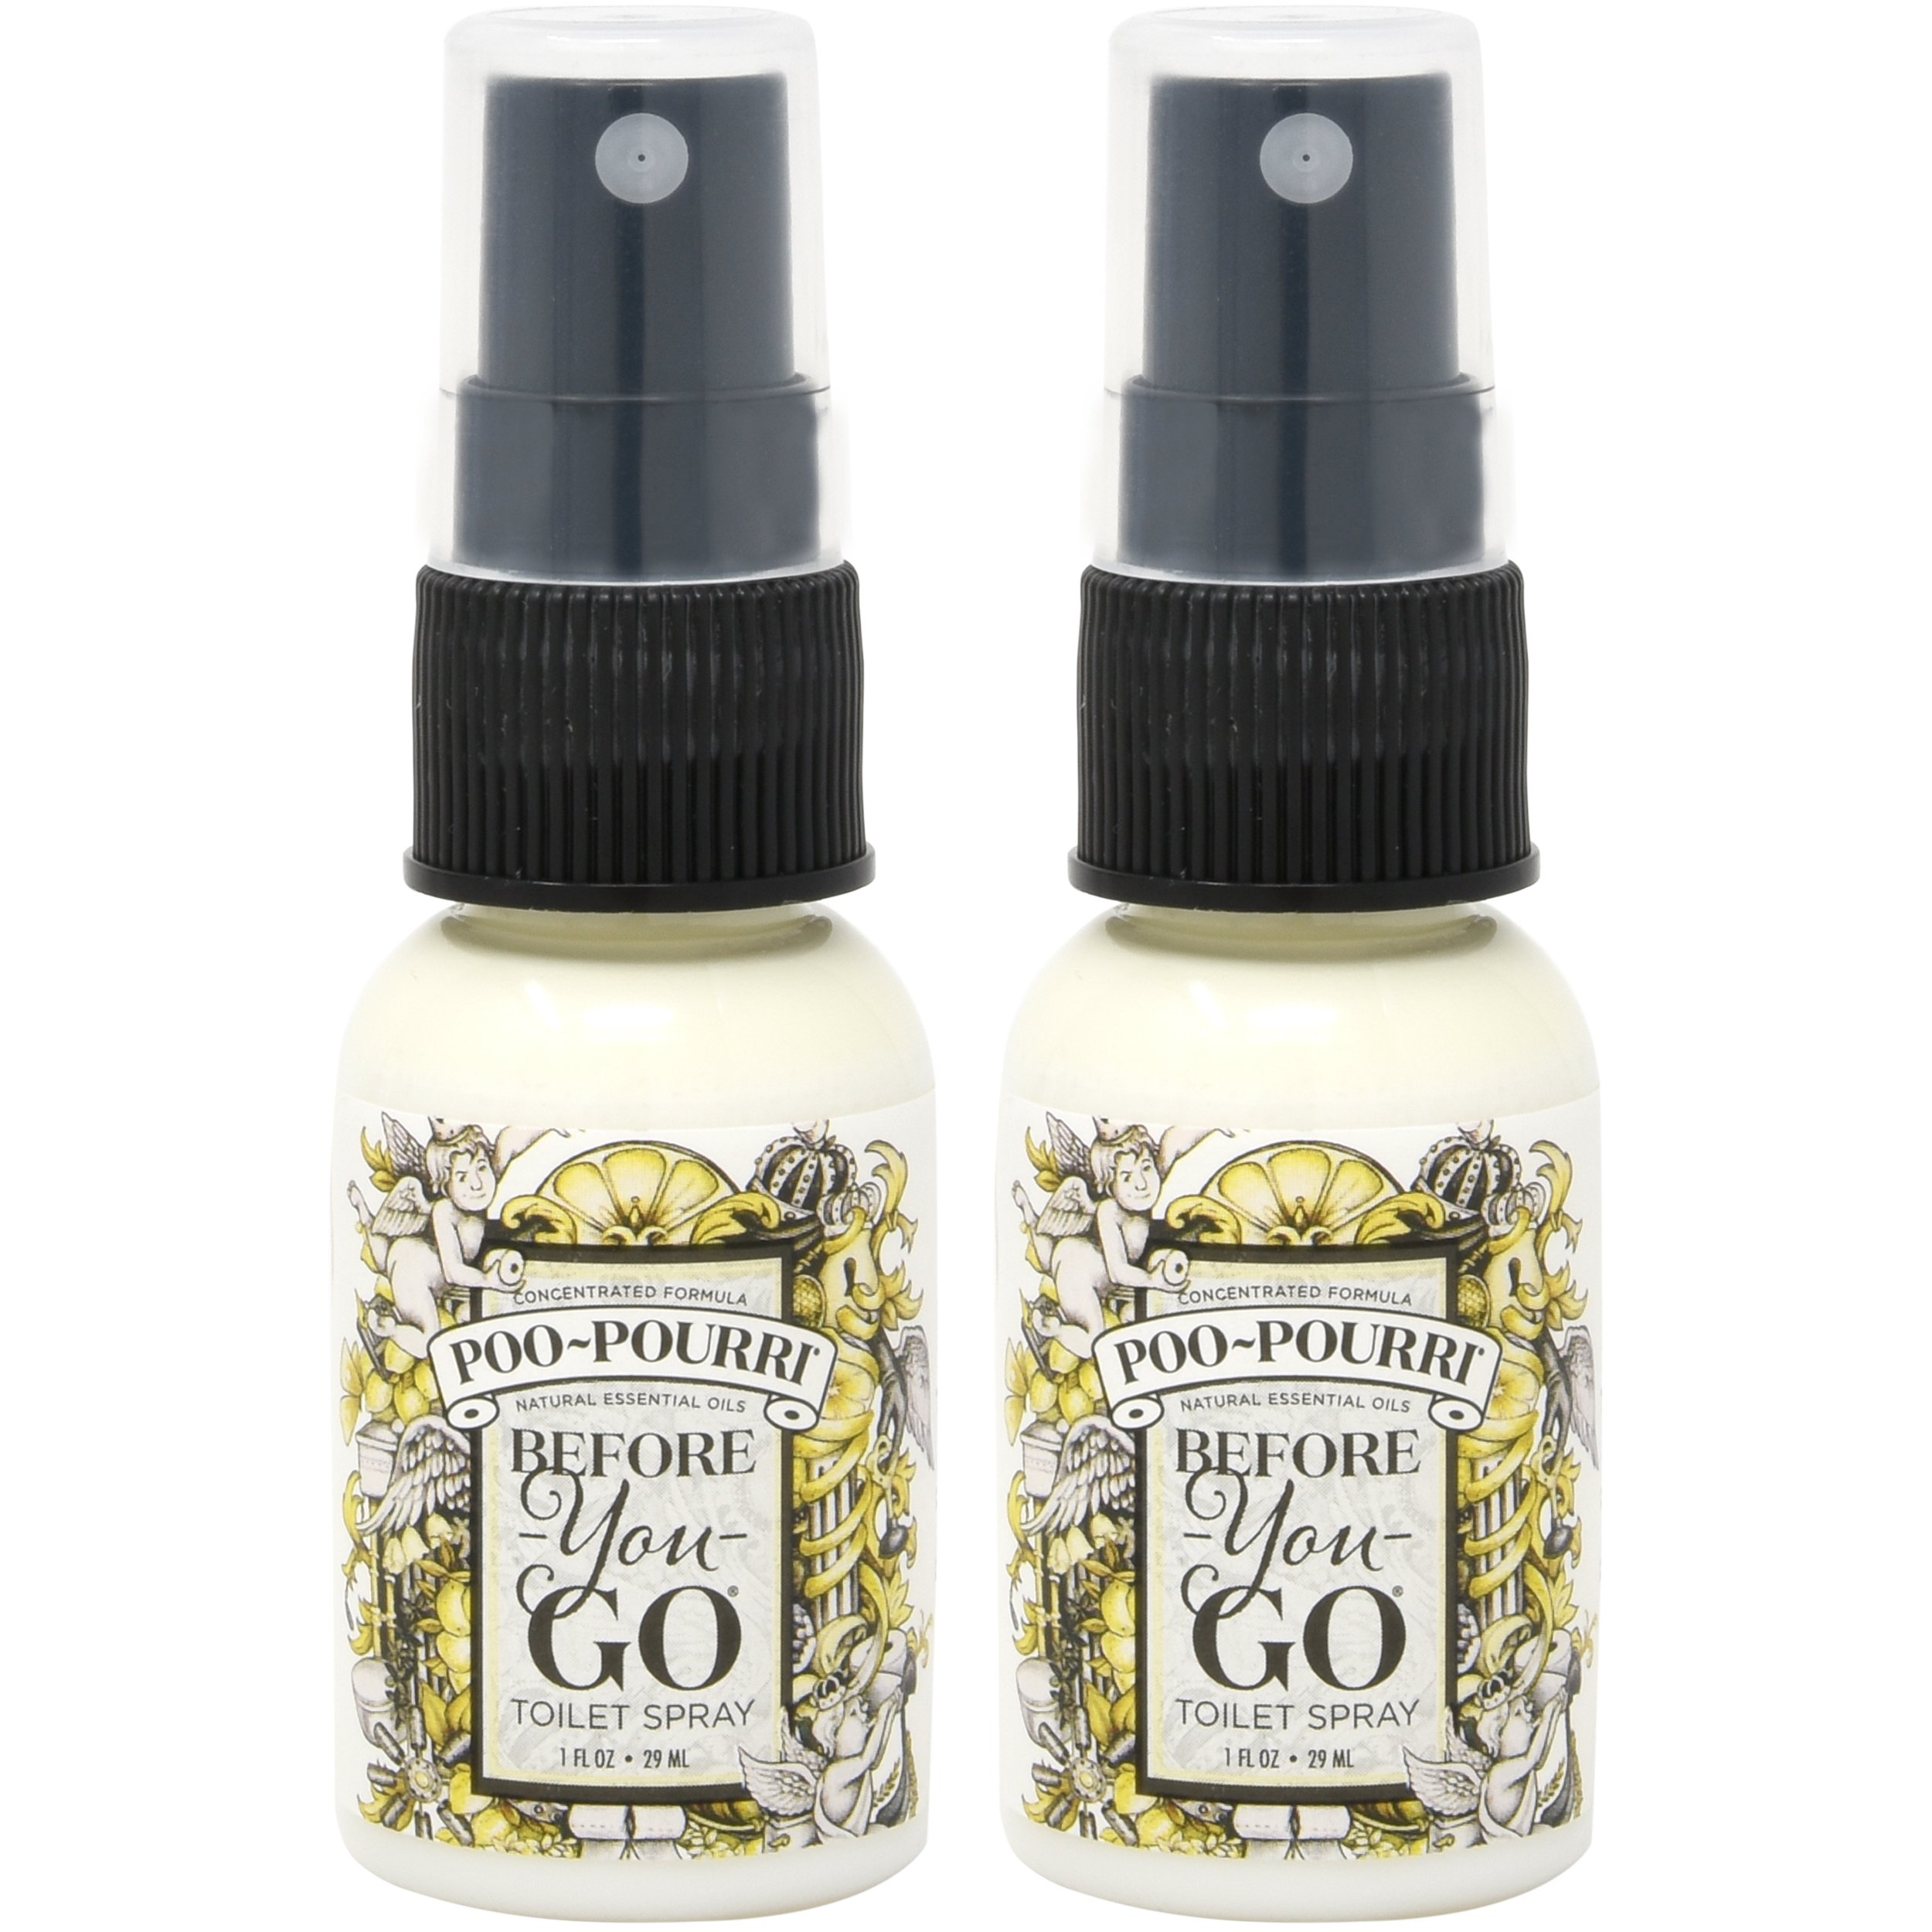 Poo-Pourri Before-You-Go Toilet Spray Bottle 1 oz Original Scent - 2 Count